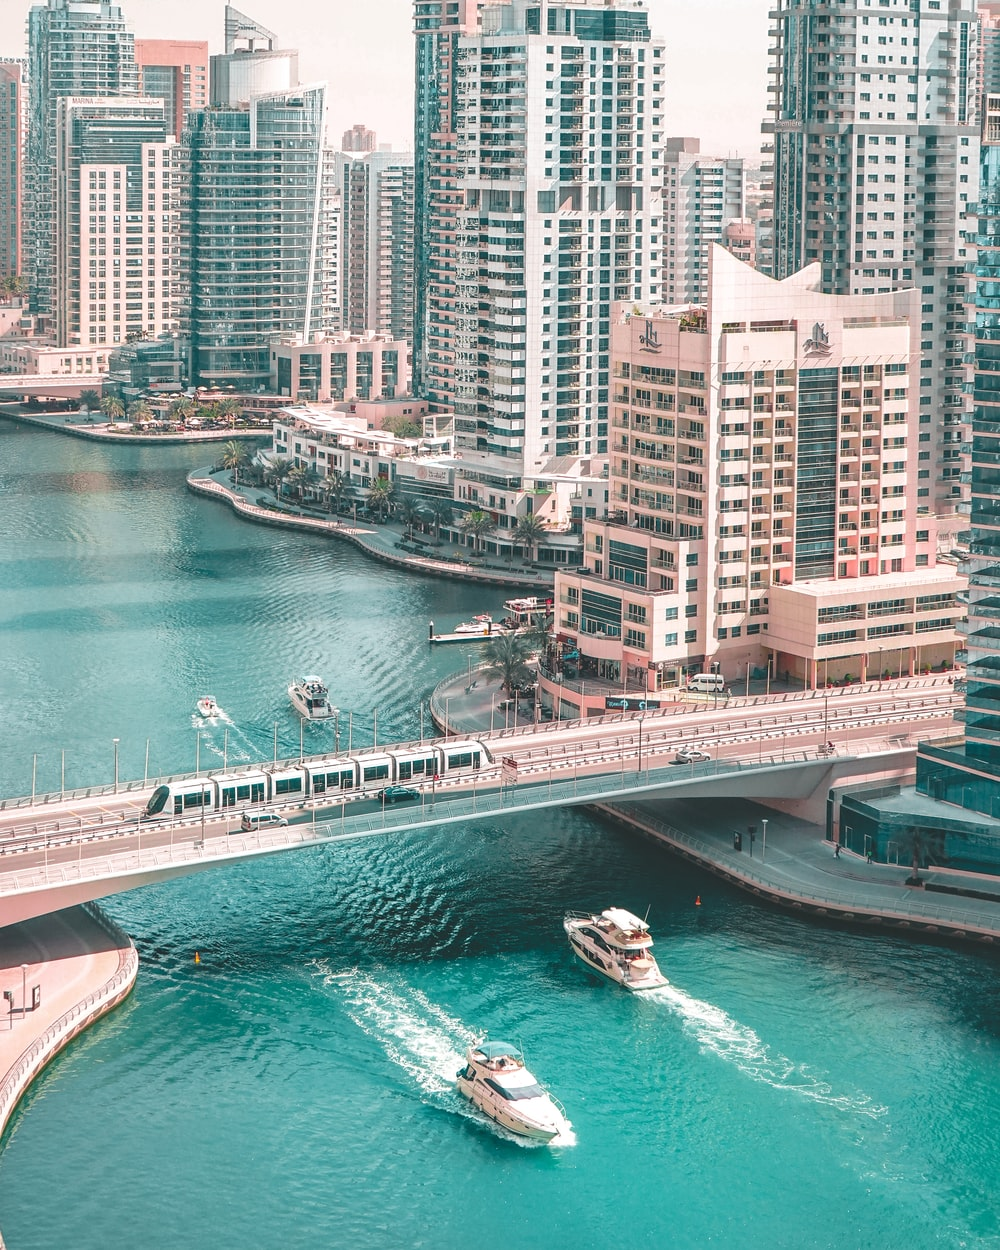 cheap universities for engineering in UAE: aerial photography of bridge